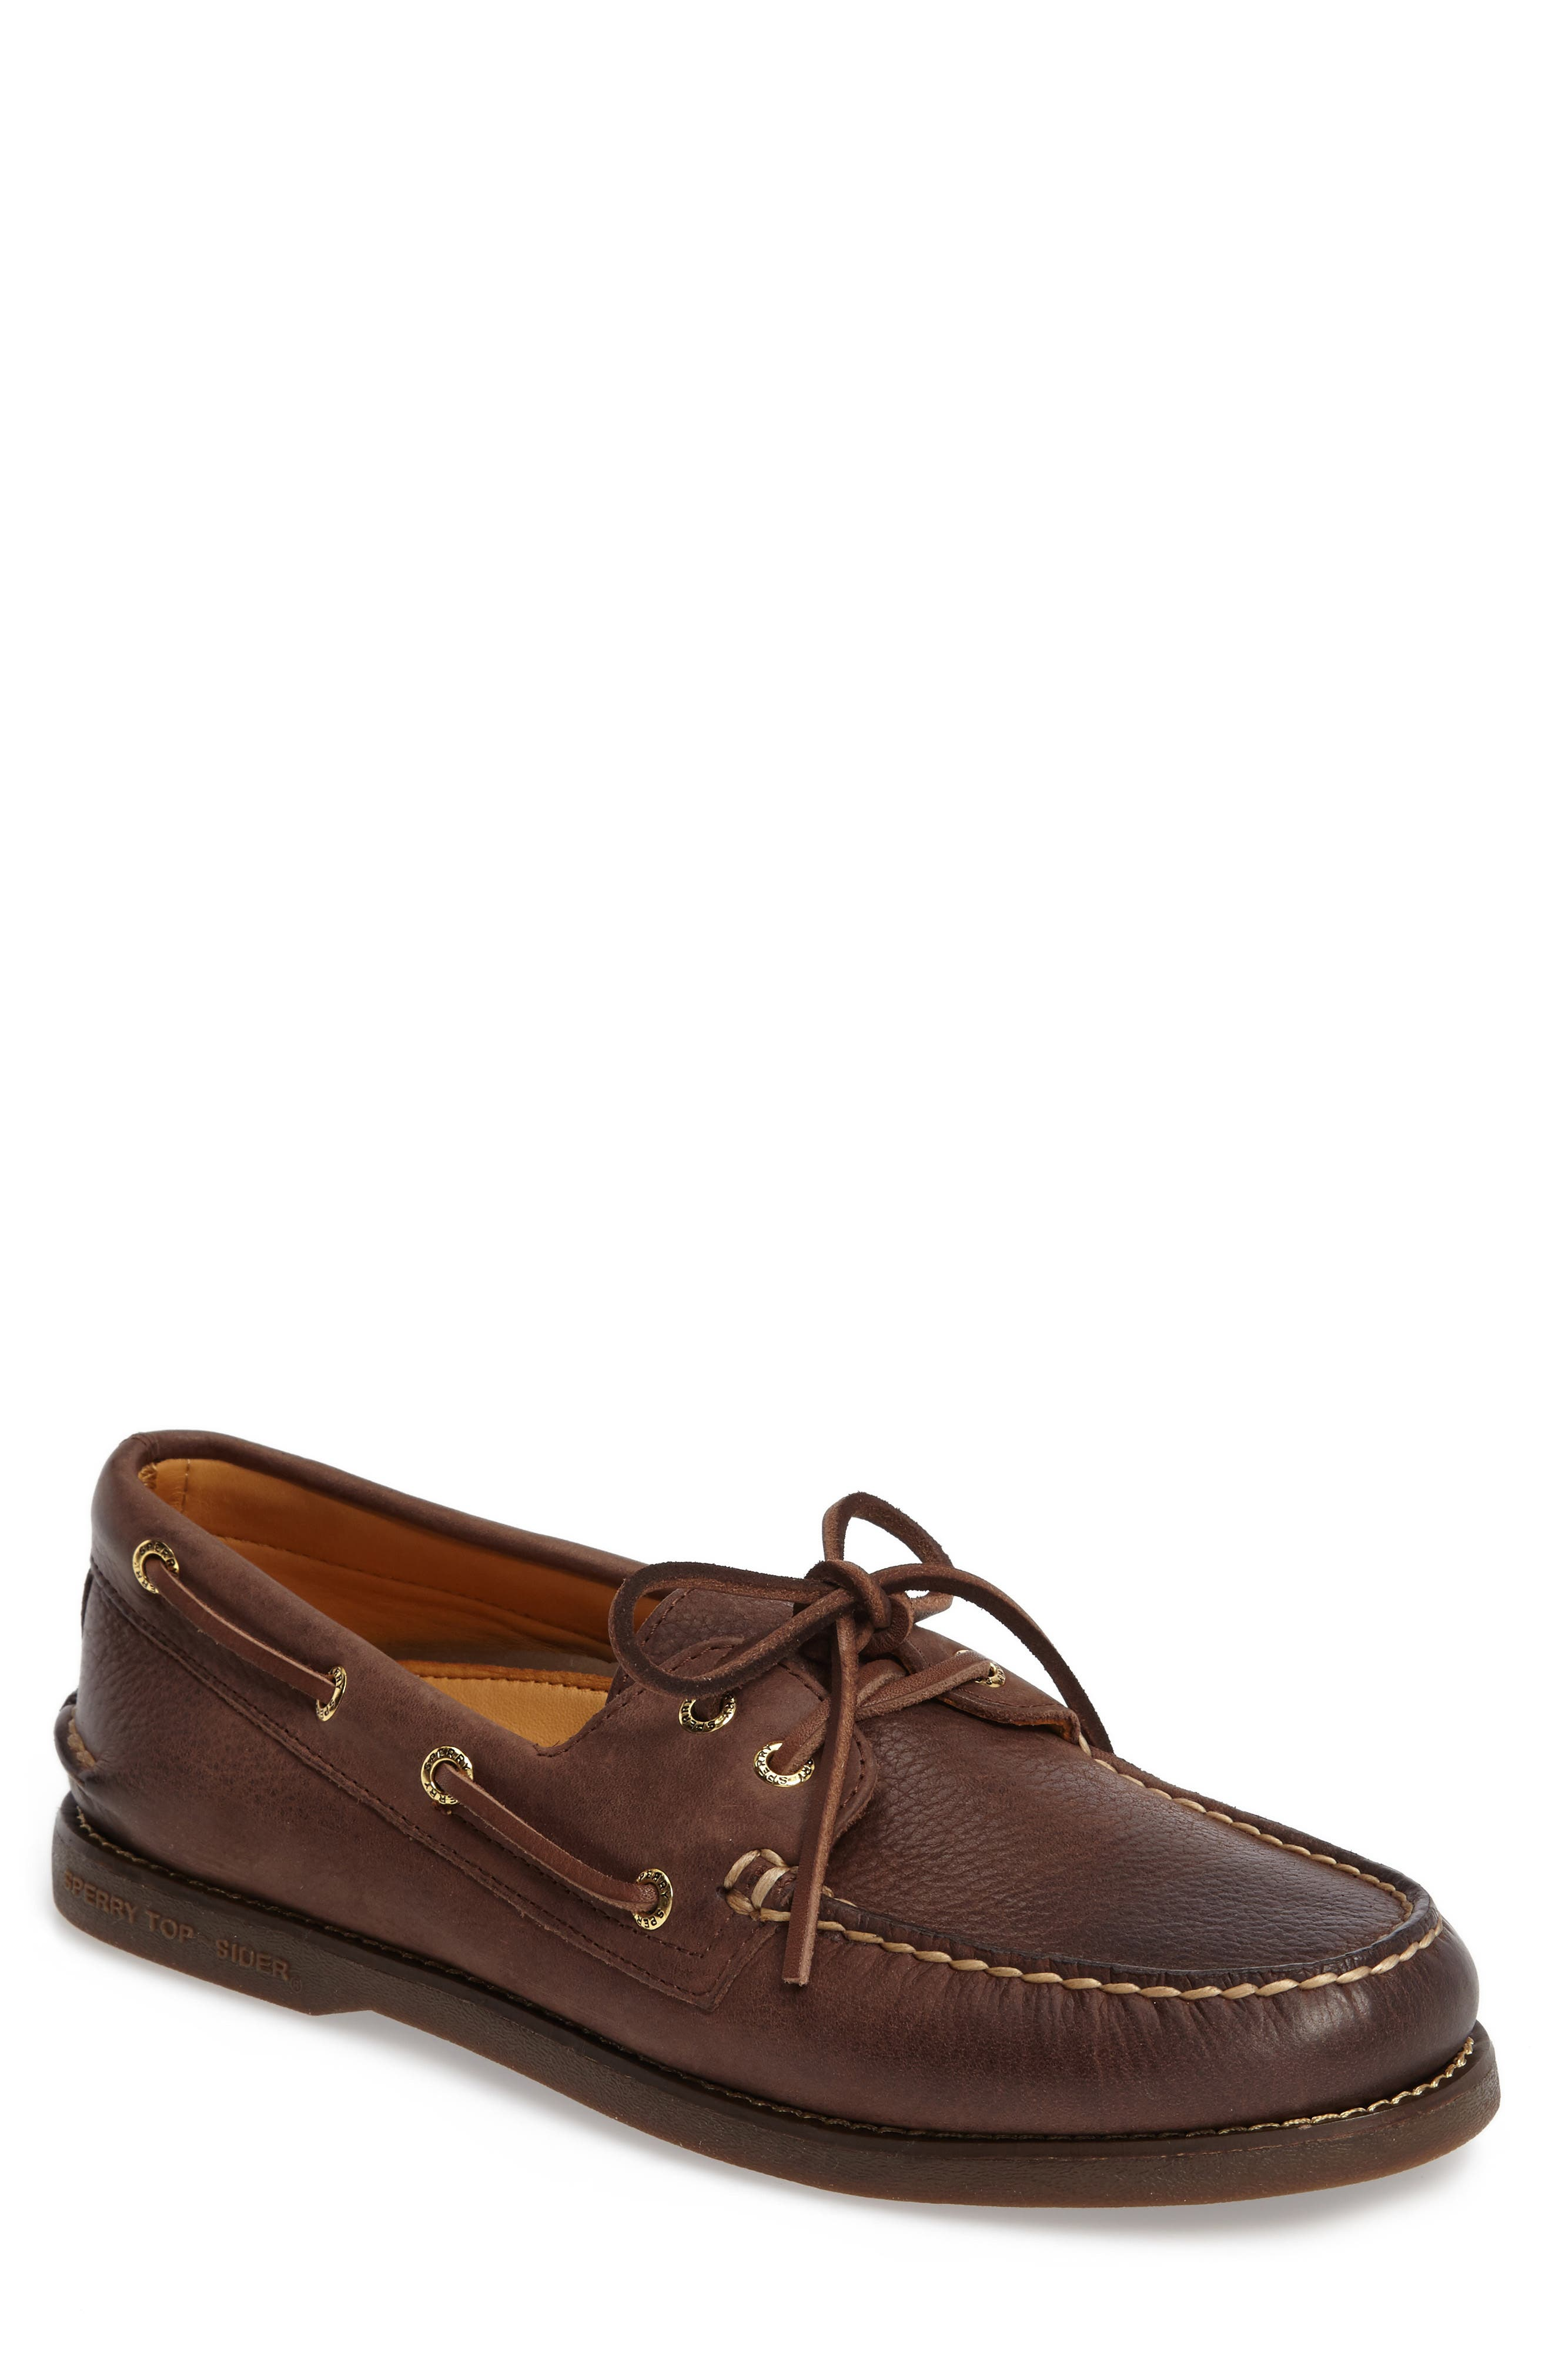 'Gold Cup - Authentic Original' Boat Shoe,                             Main thumbnail 1, color,                             CHOCOLATE